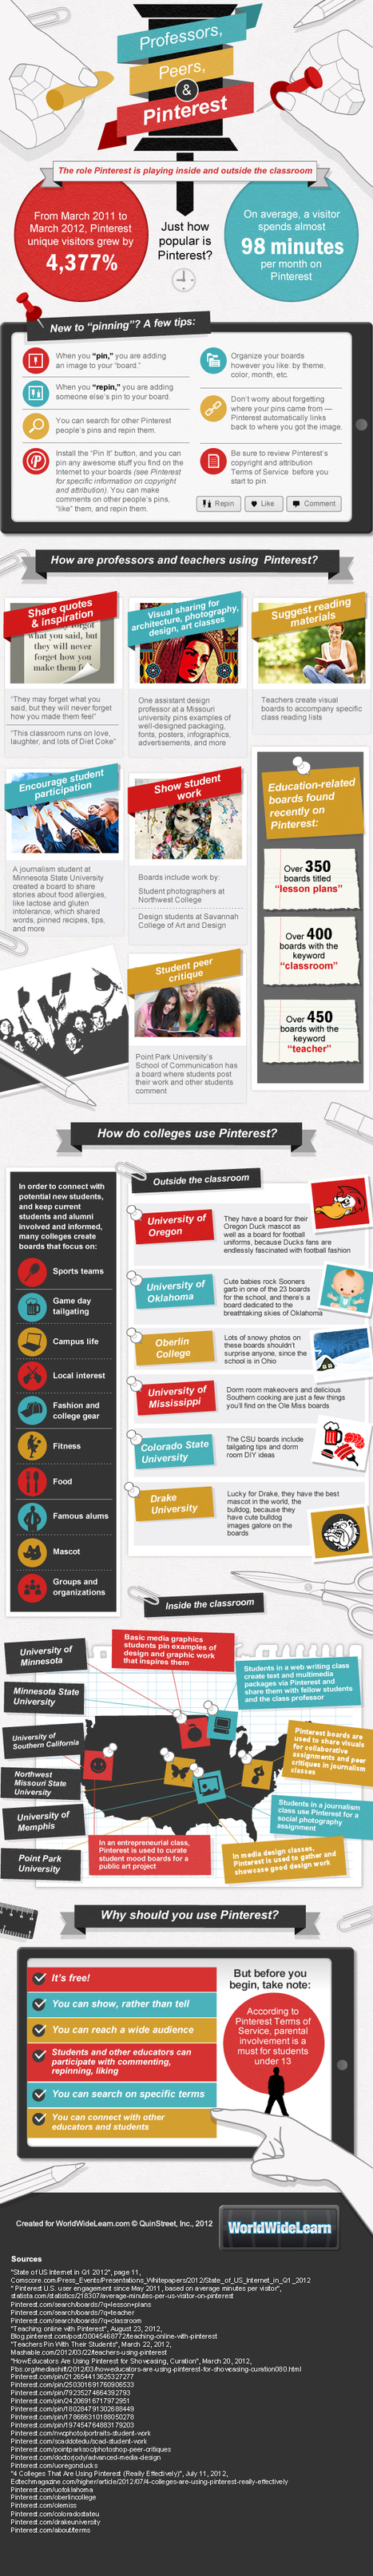 A Straightforward Guide To Using Pinterest In Education [Infographic] | ENT | Scoop.it